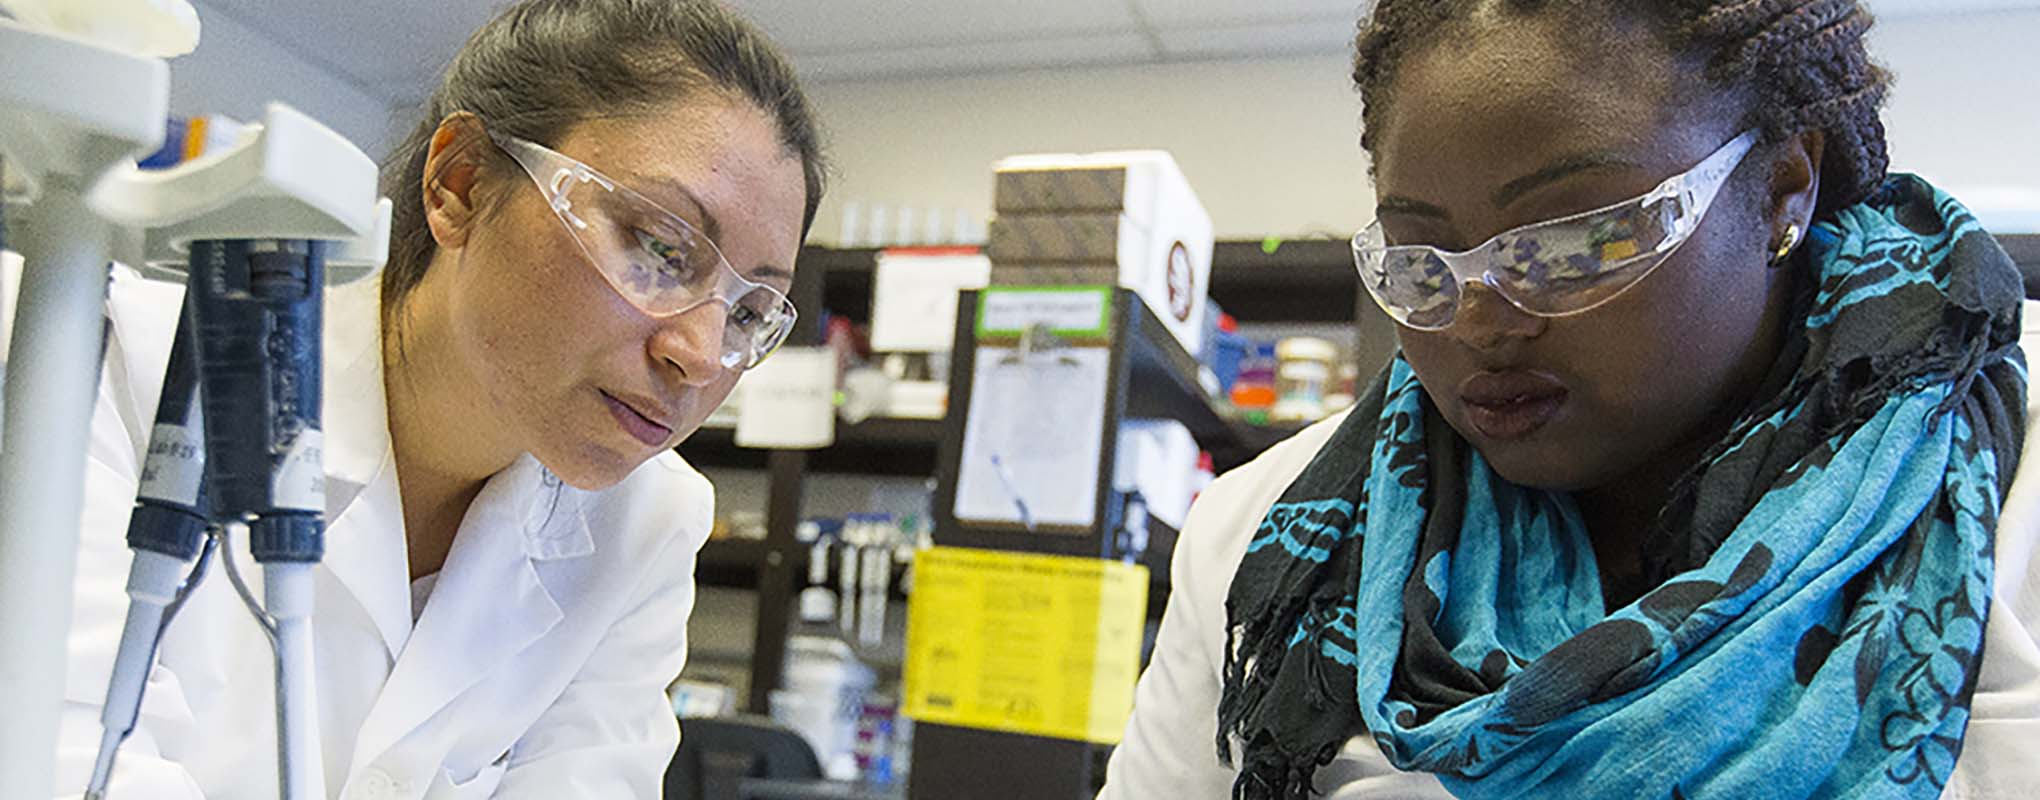 Diverse women working in lab